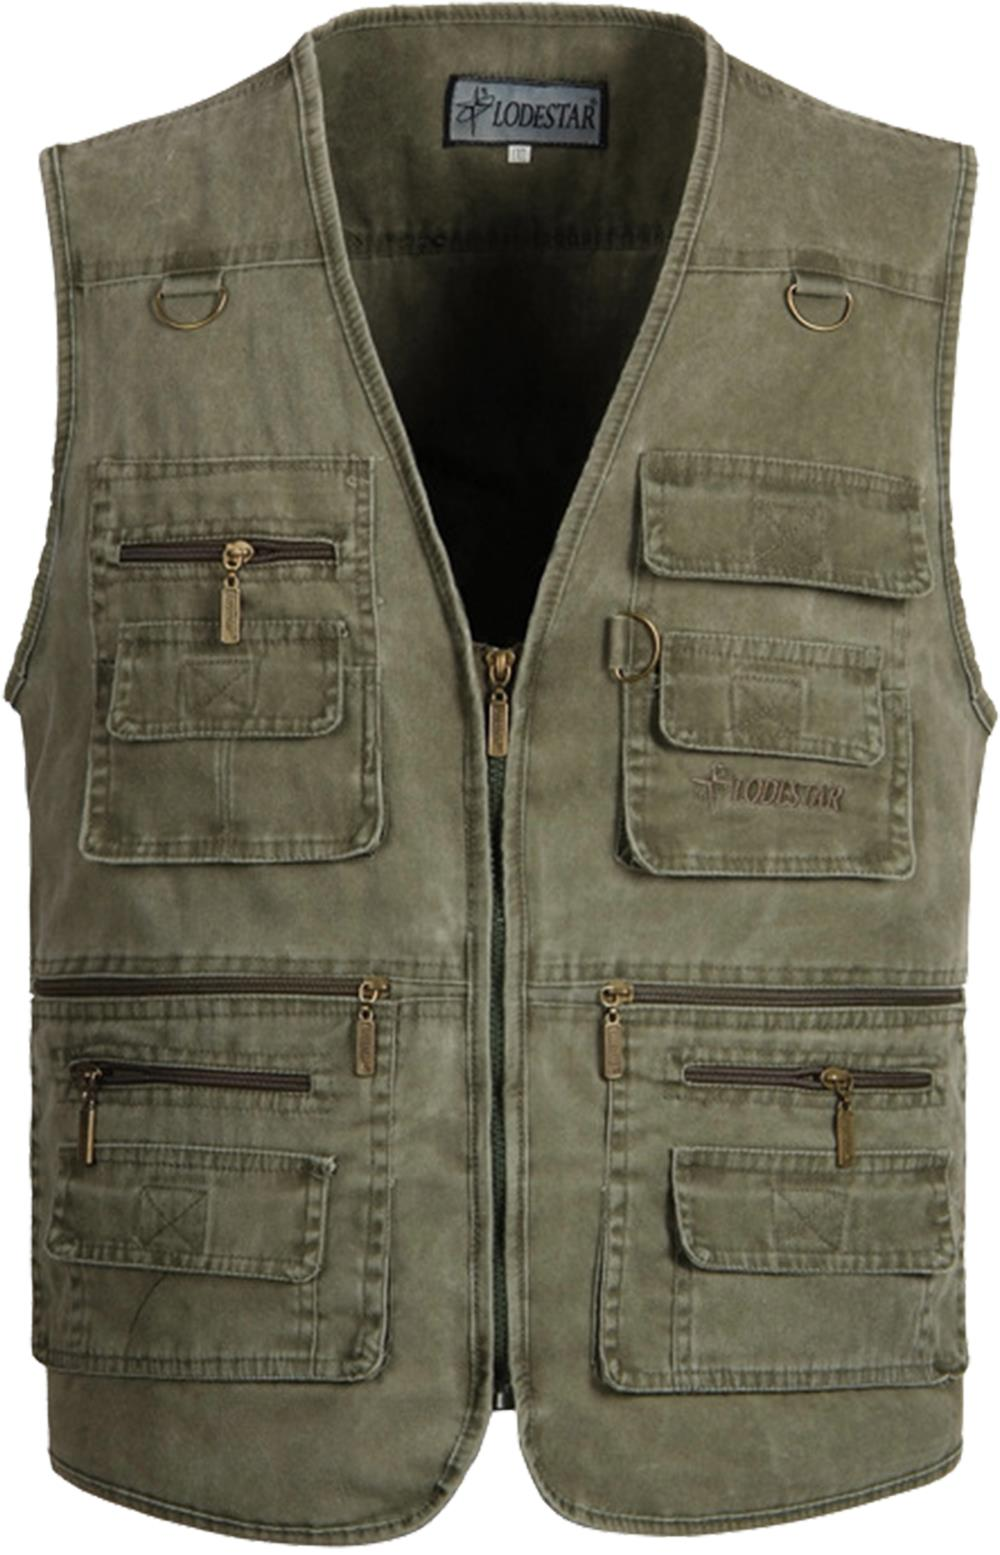 Mens Multi pocket Travel Safari Vest Outdoor Plus Size